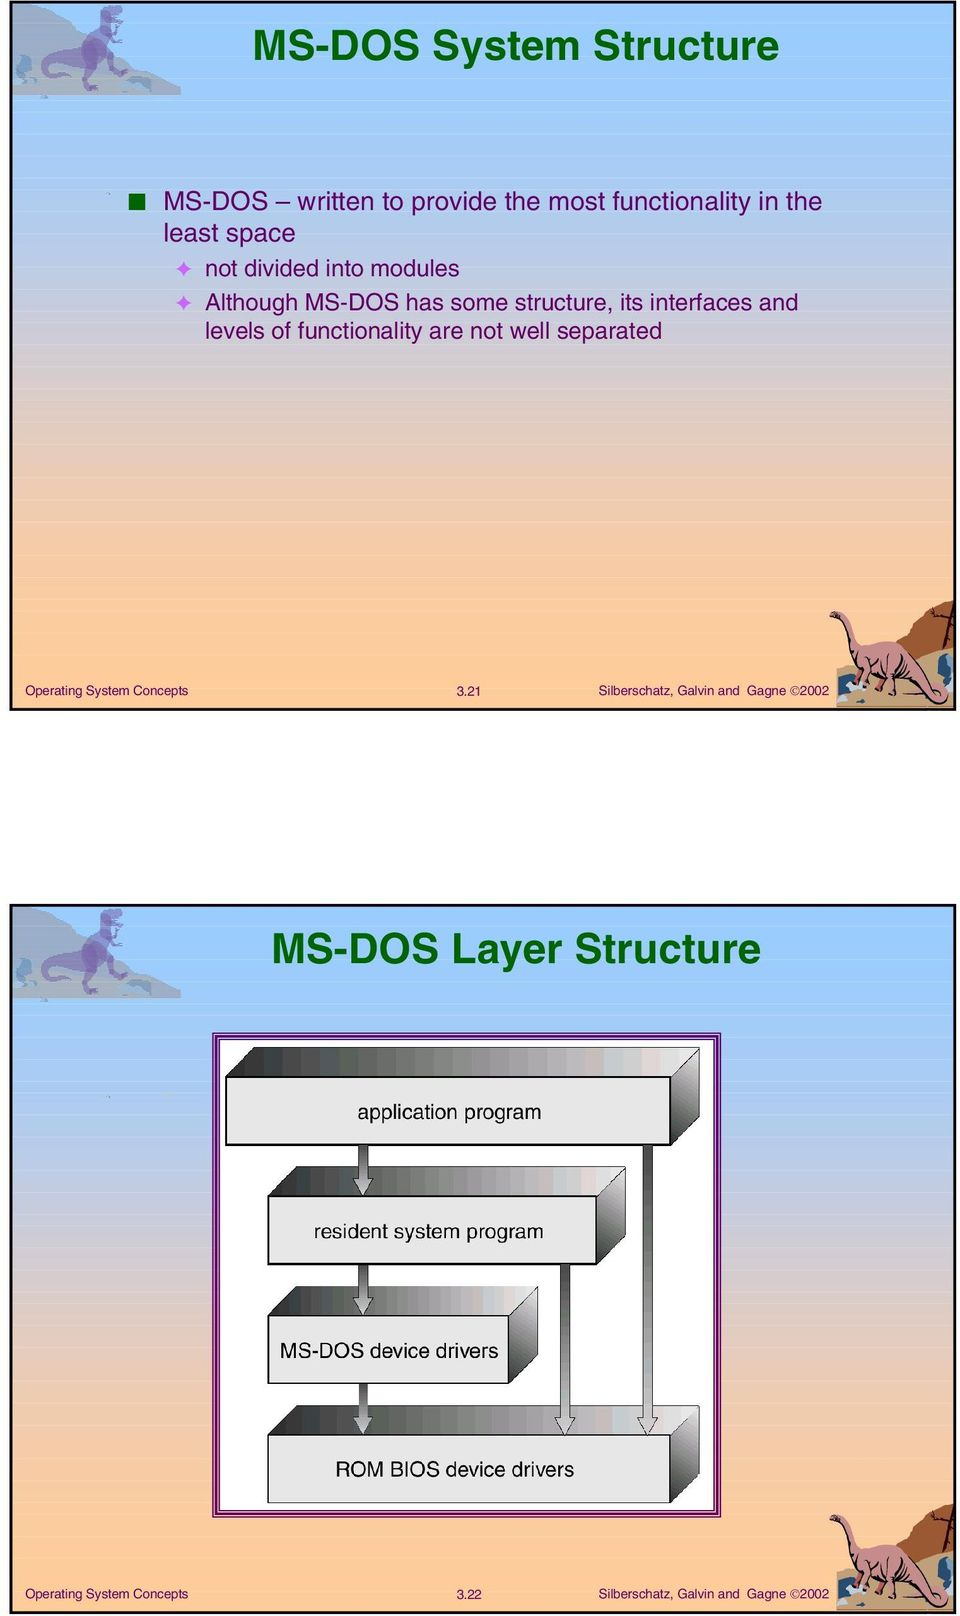 Although MS-DOS has some structure, its interfaces and levels